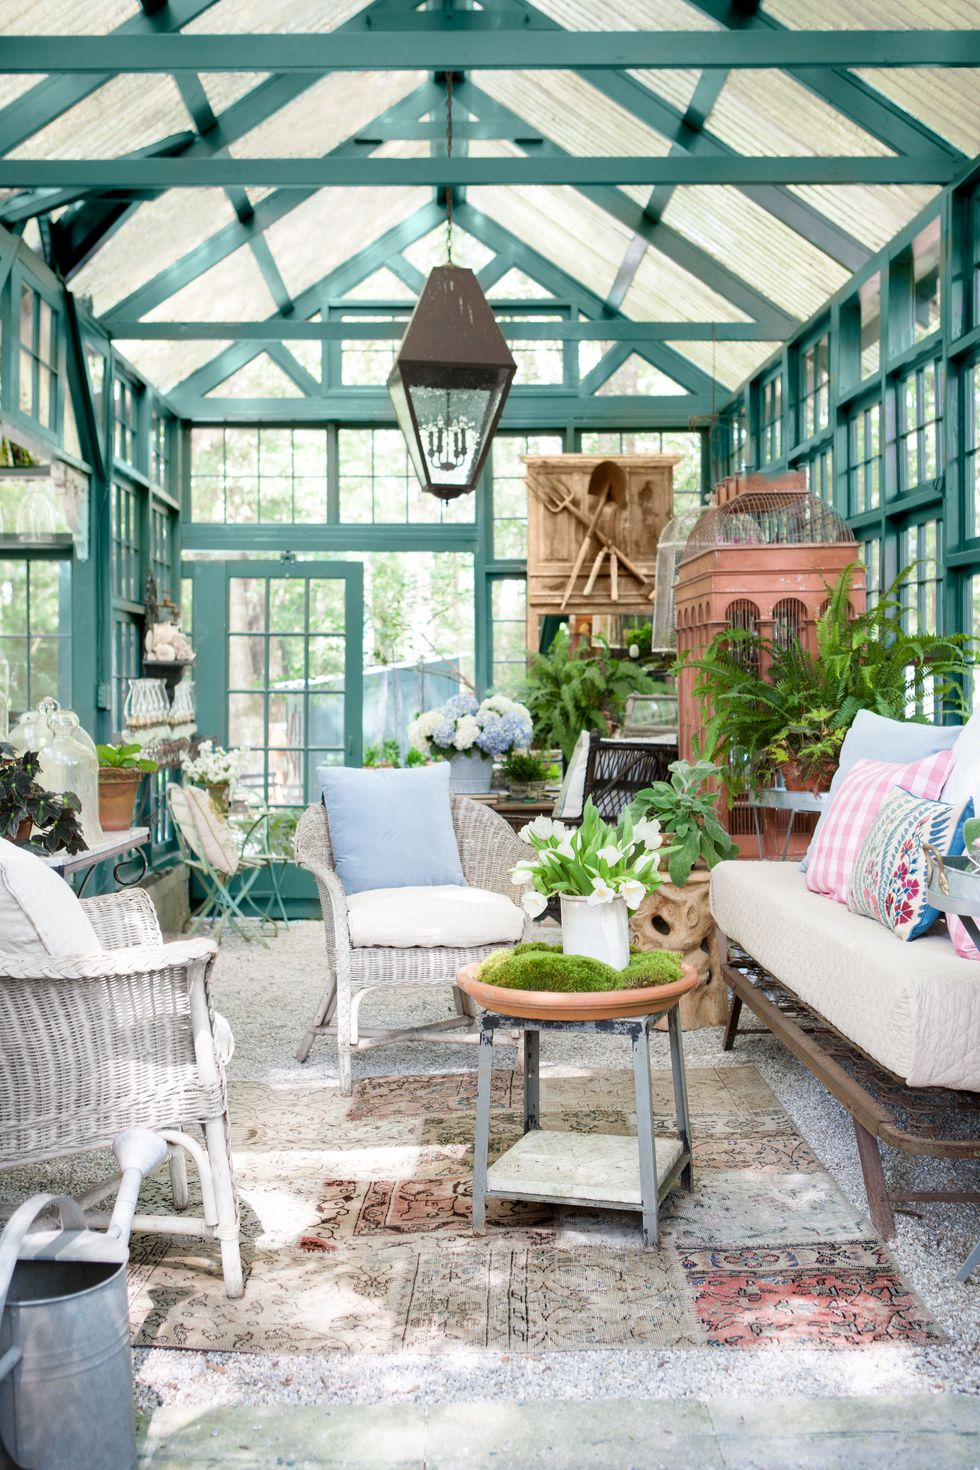 Chic she shed garden retreat with luxurious interior in backyard by Susanne Hudson. Green trim is painted Benjamin Moore Tarrytown Green.